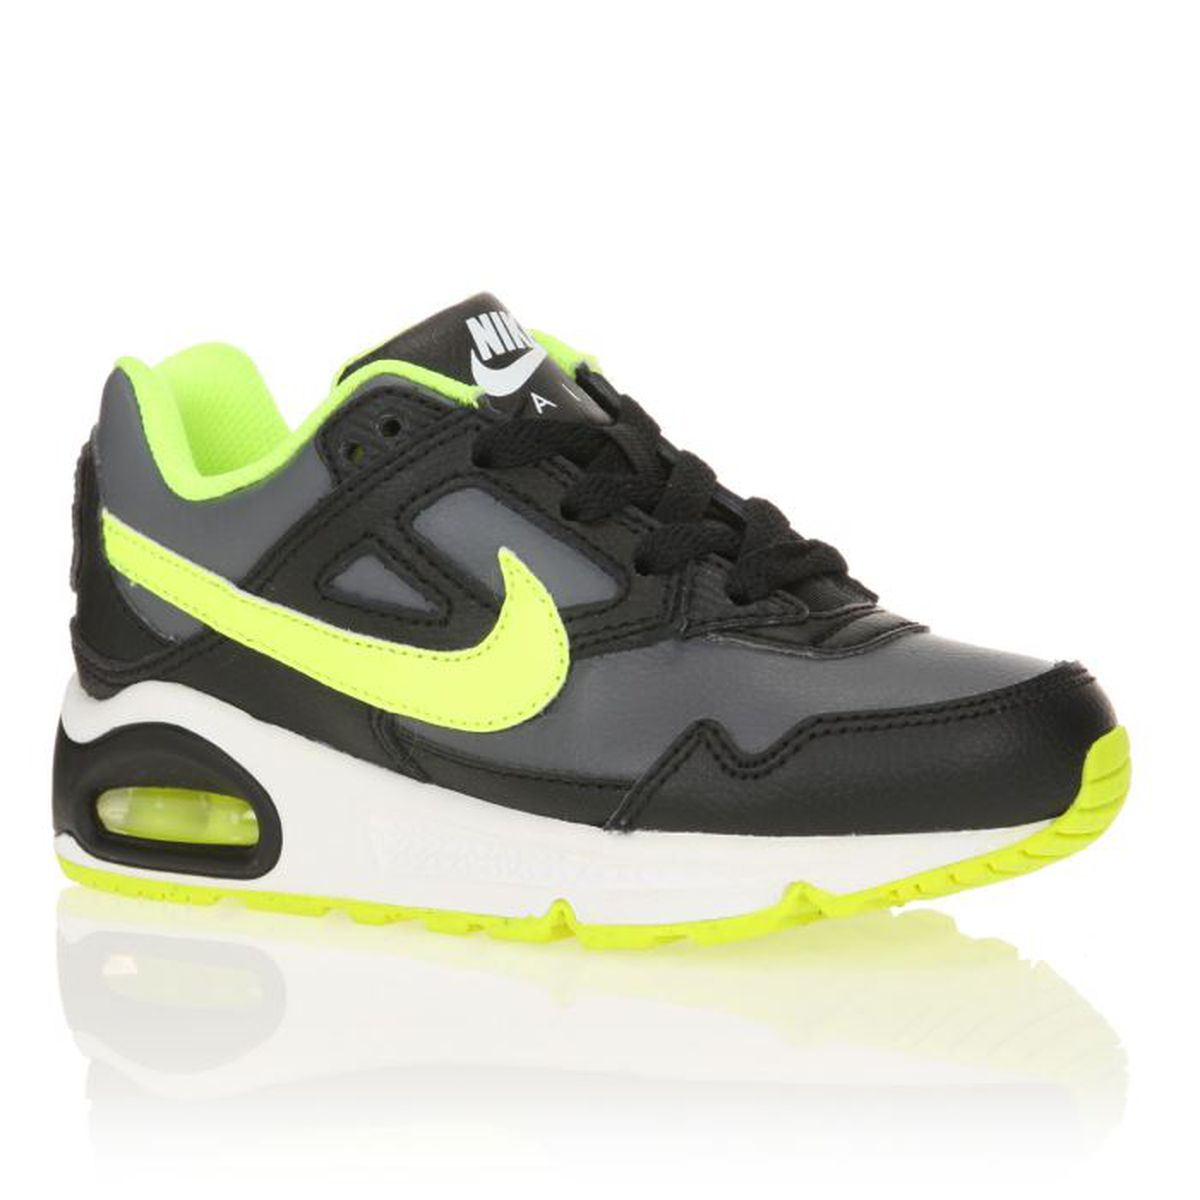 air max enfant garcon,nike baskets air max 90 mesh ps enfant